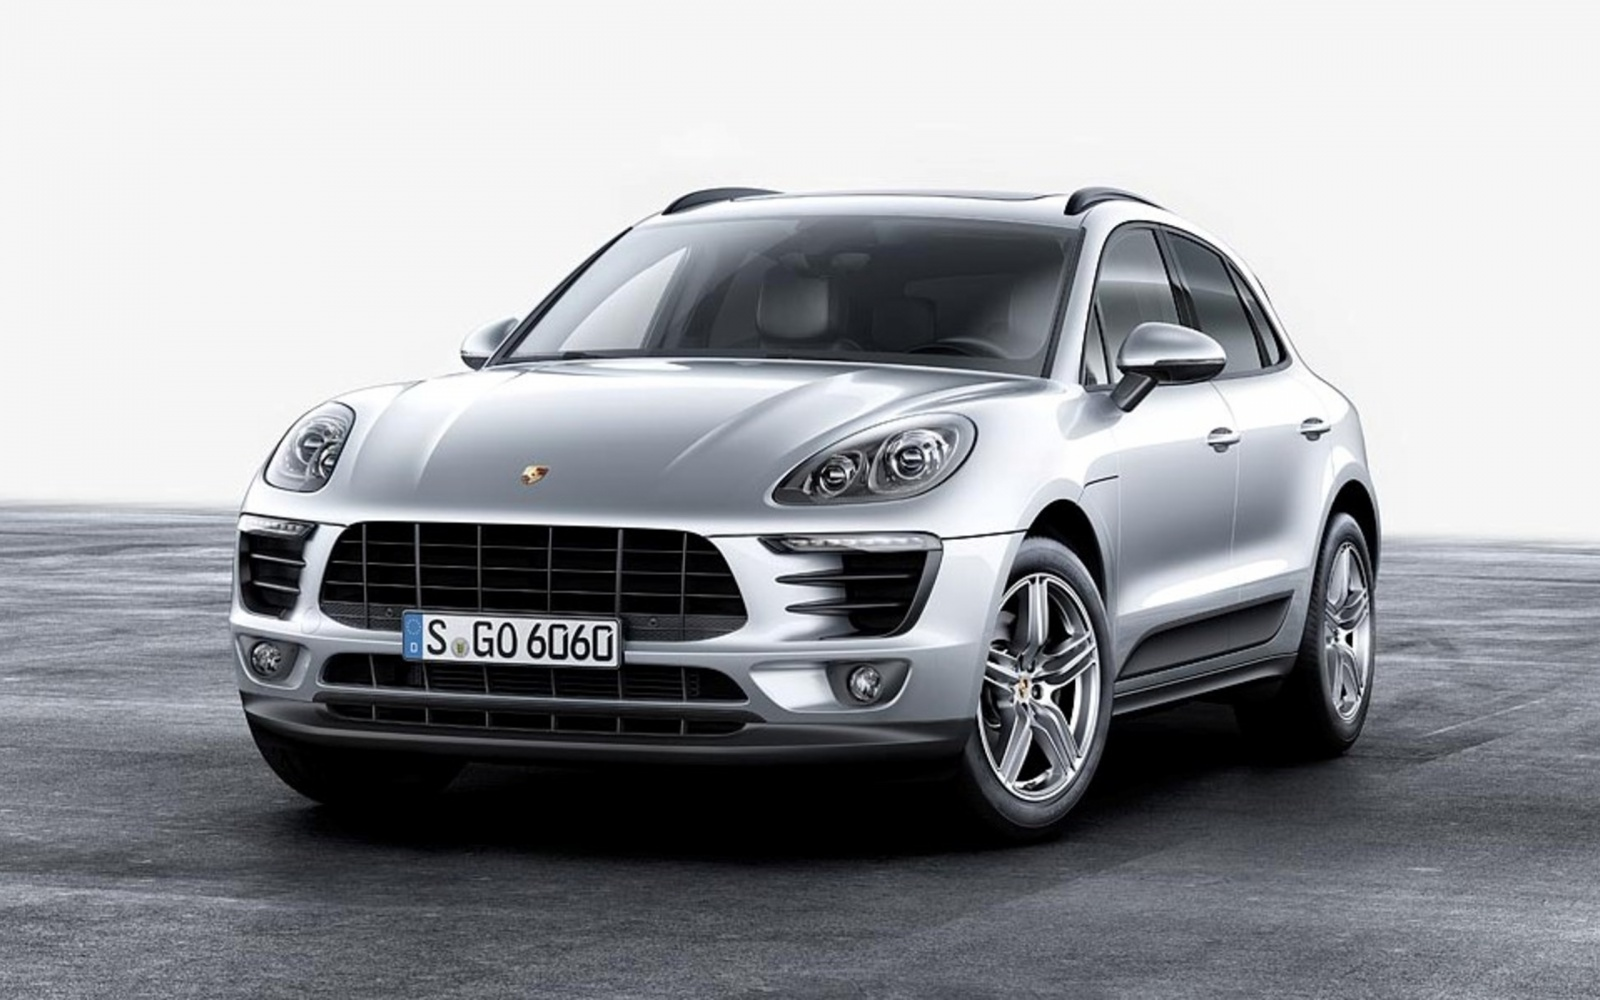 09_2017-Porsche-Macan-Four-Cylinder-Turbo